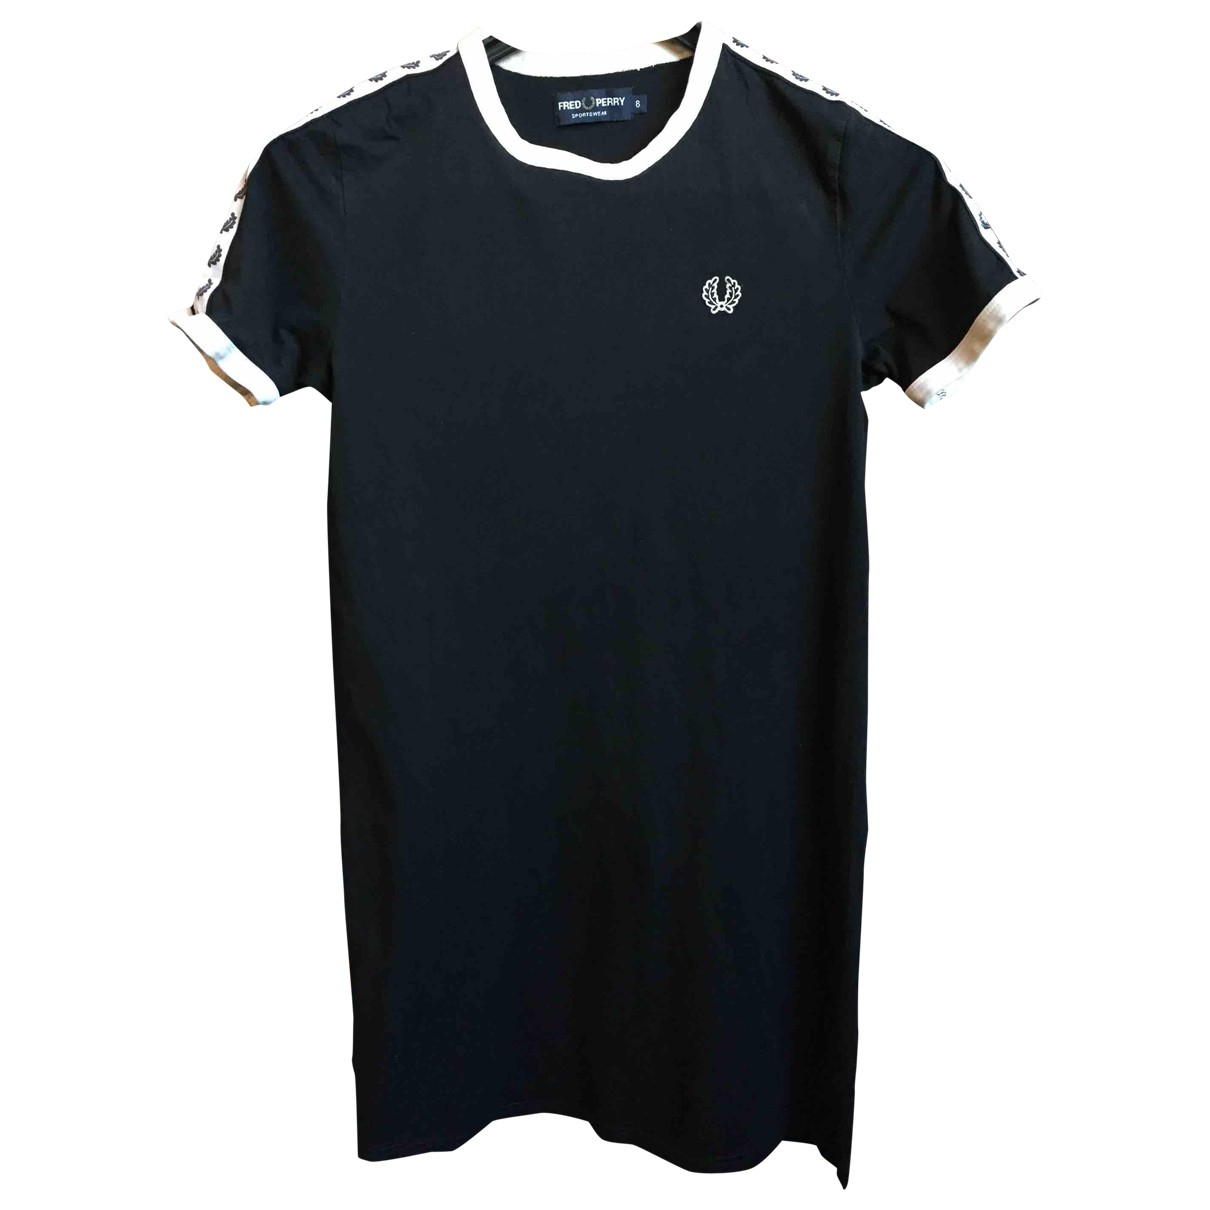 Fred Perry \N Black Cotton dress for Women 8 UK